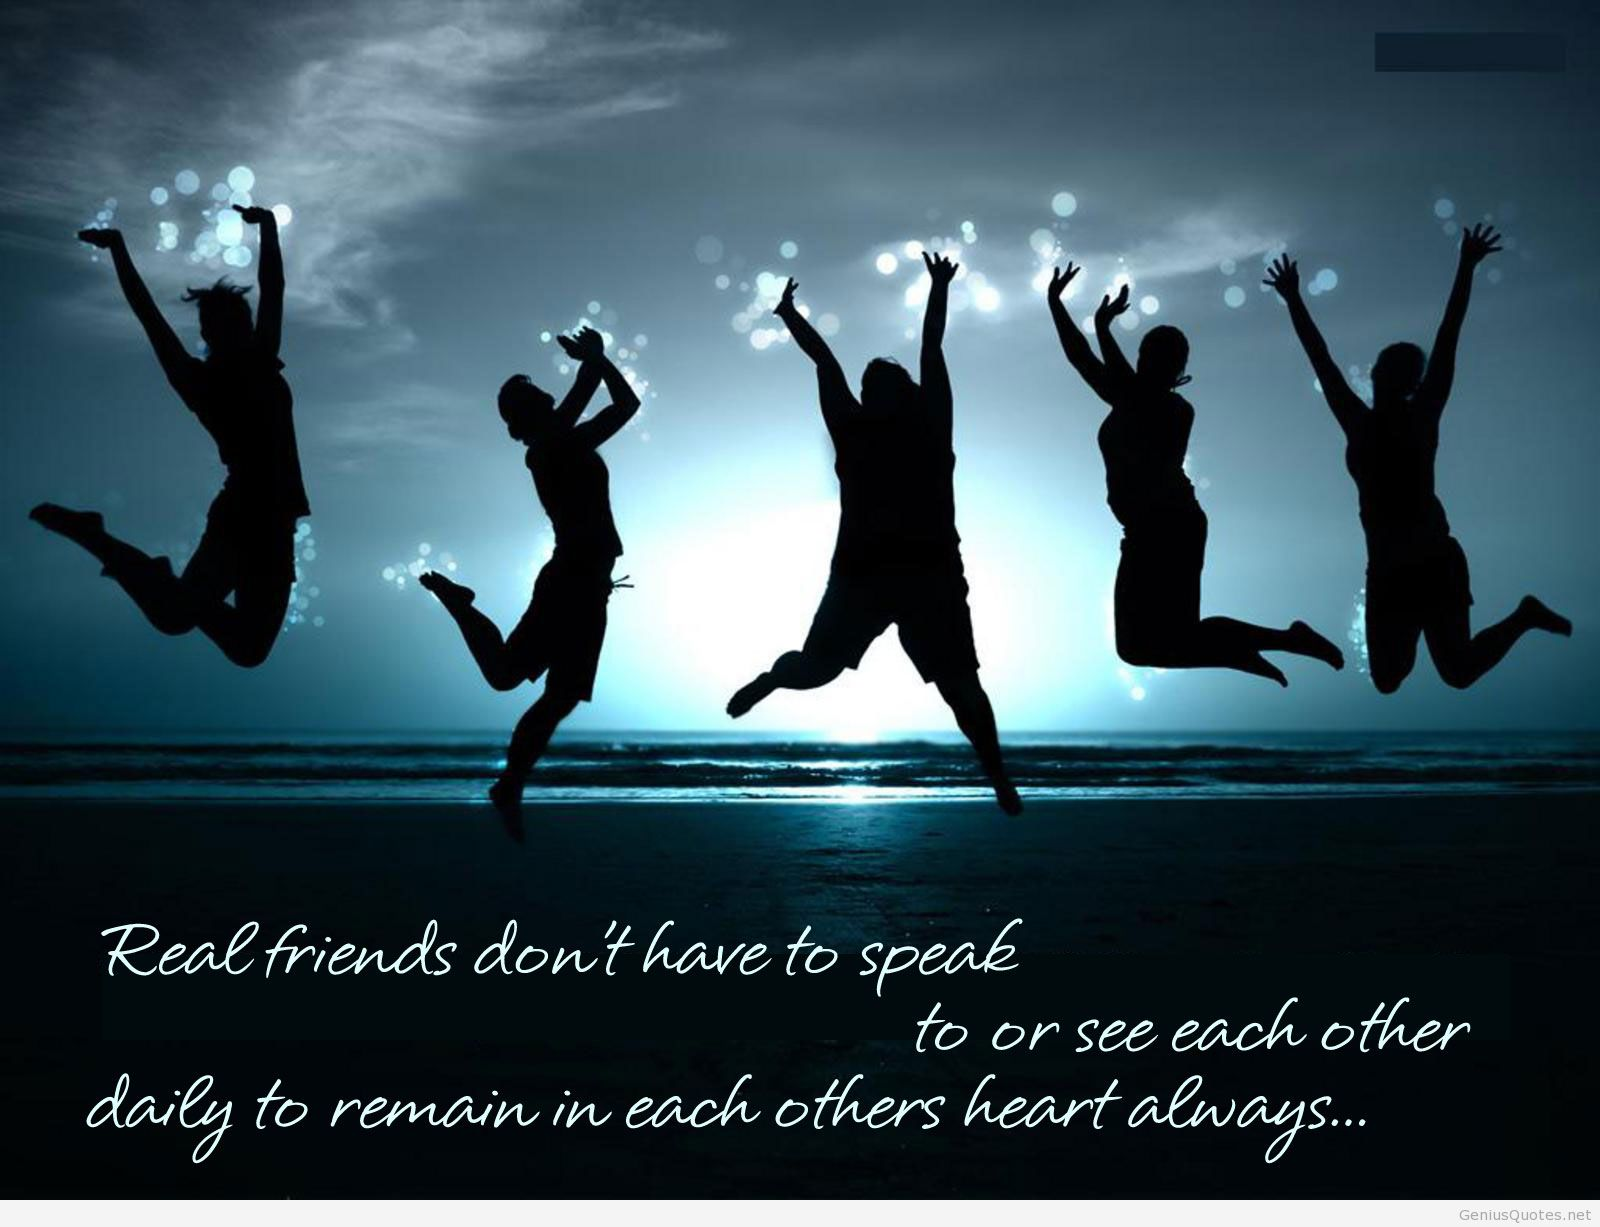 Wallpaper Of Friends